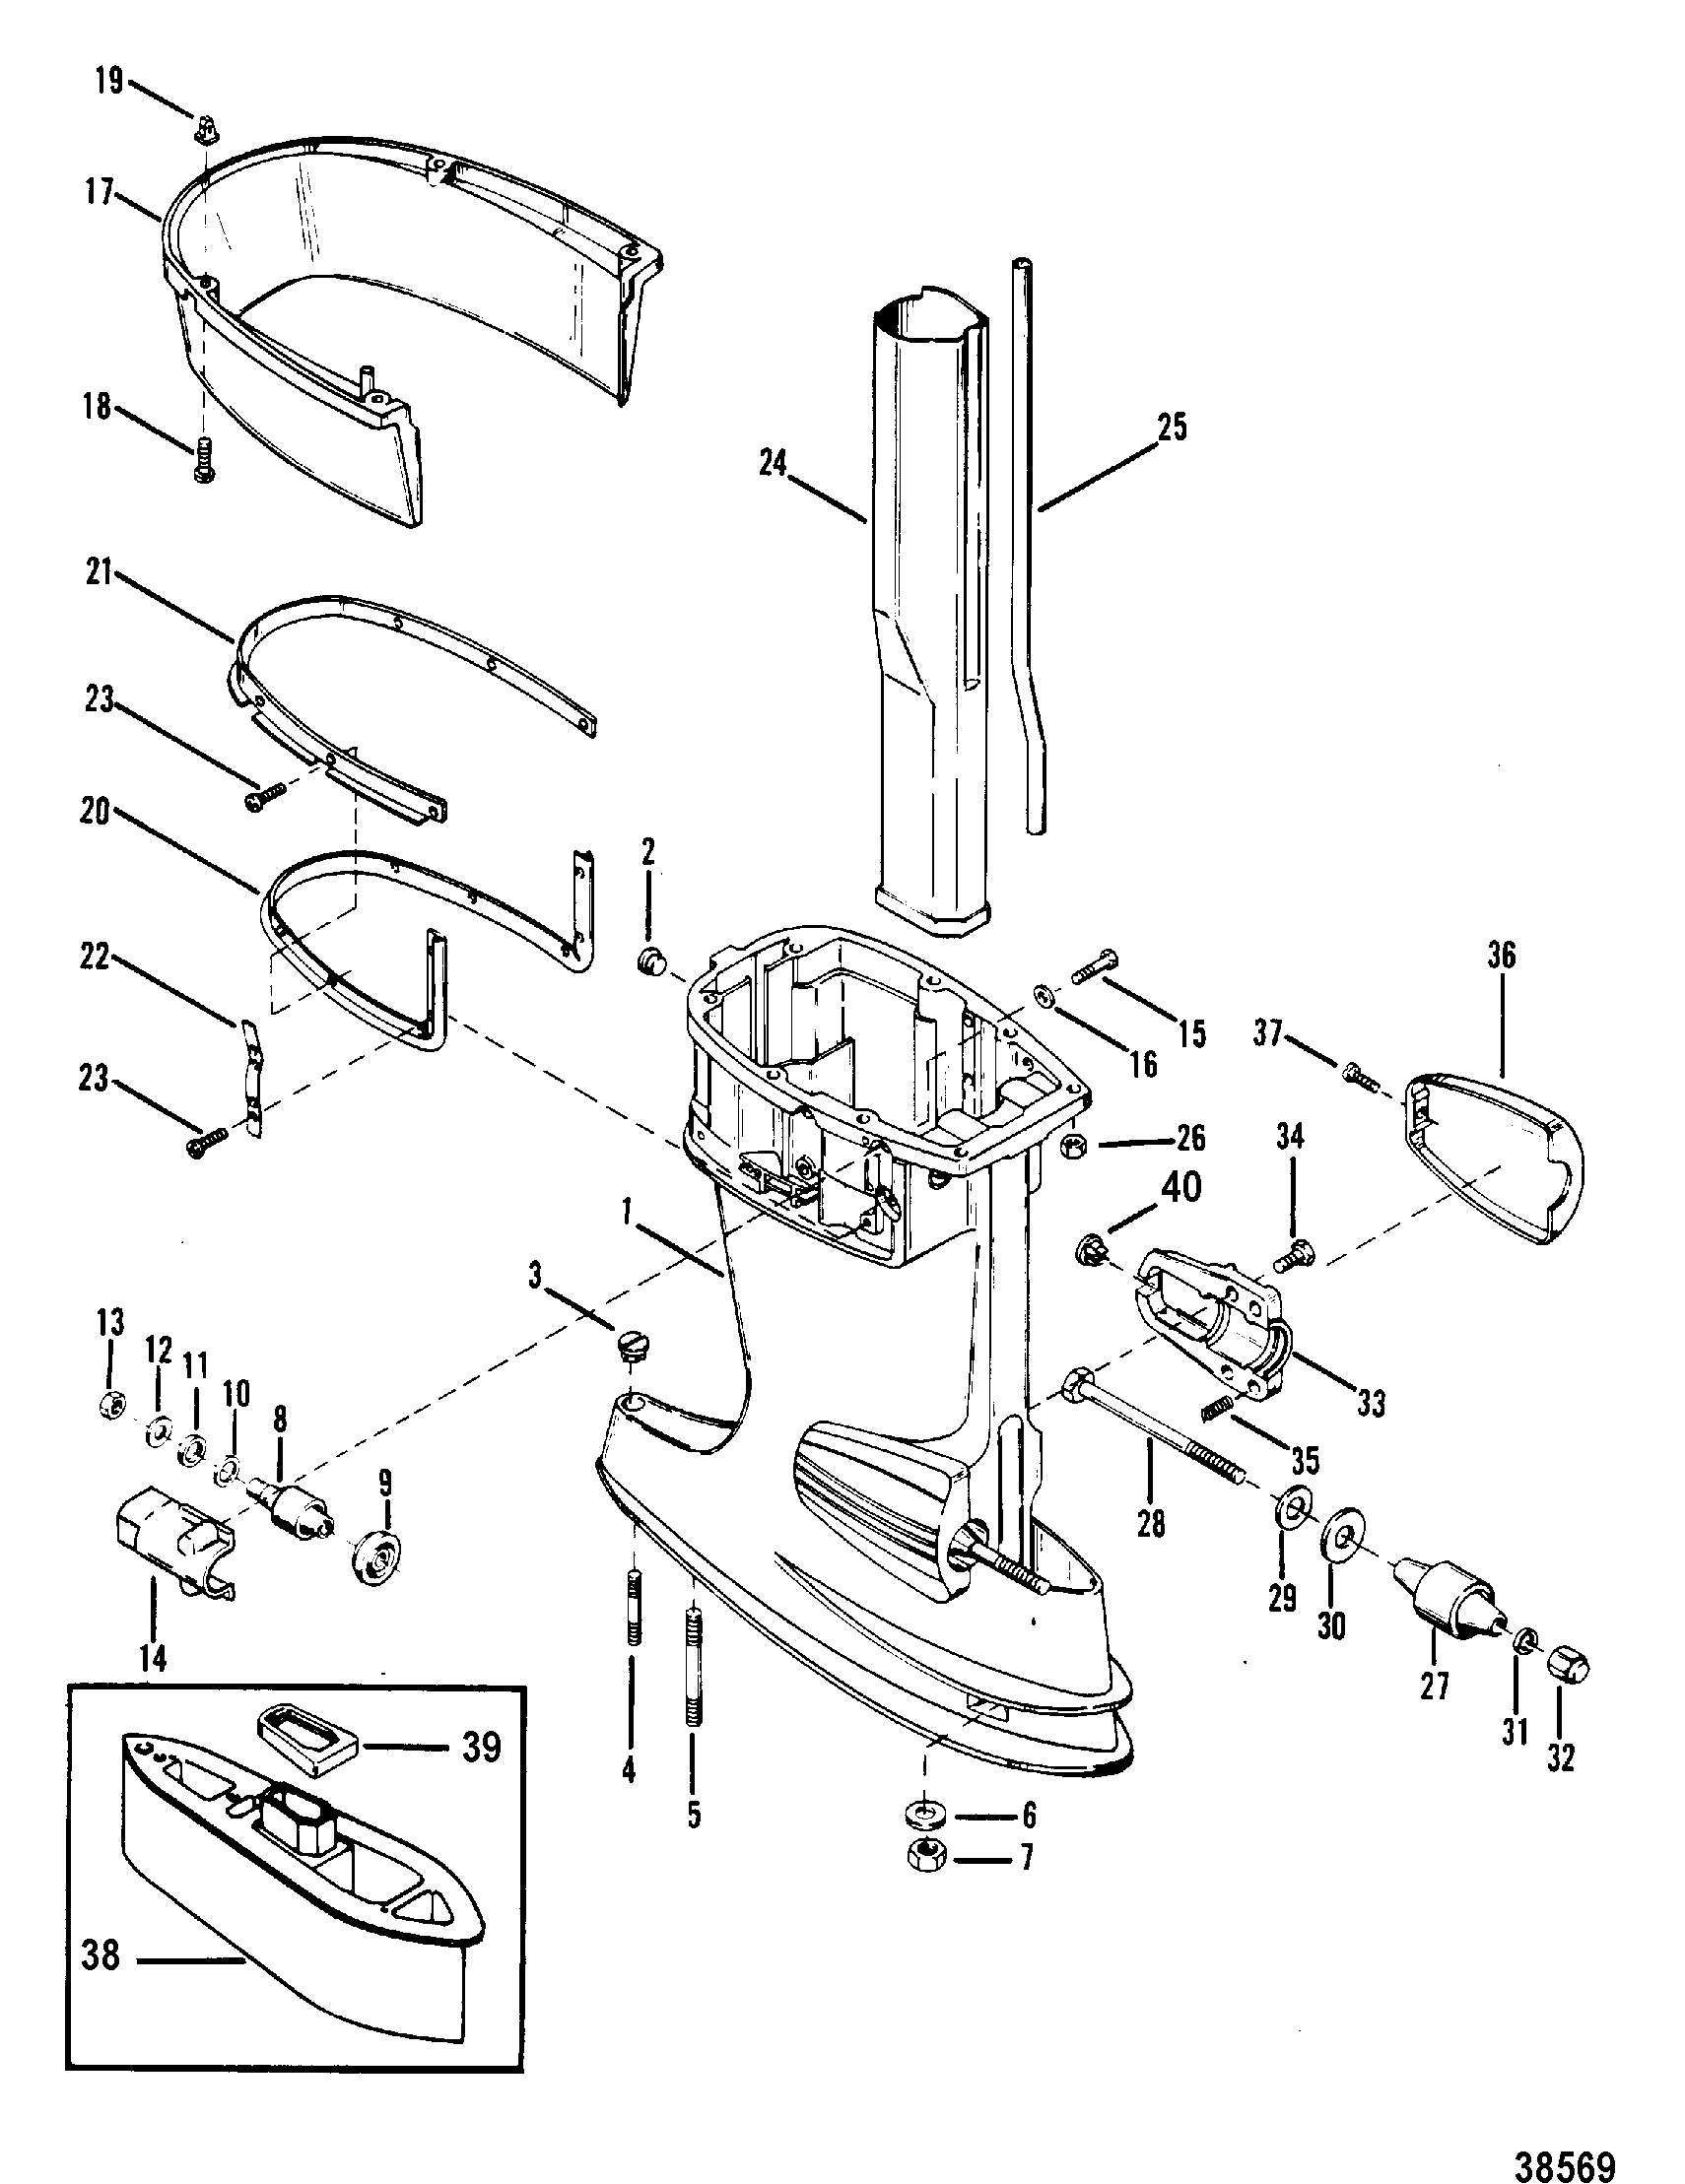 meyer salt spreader parts